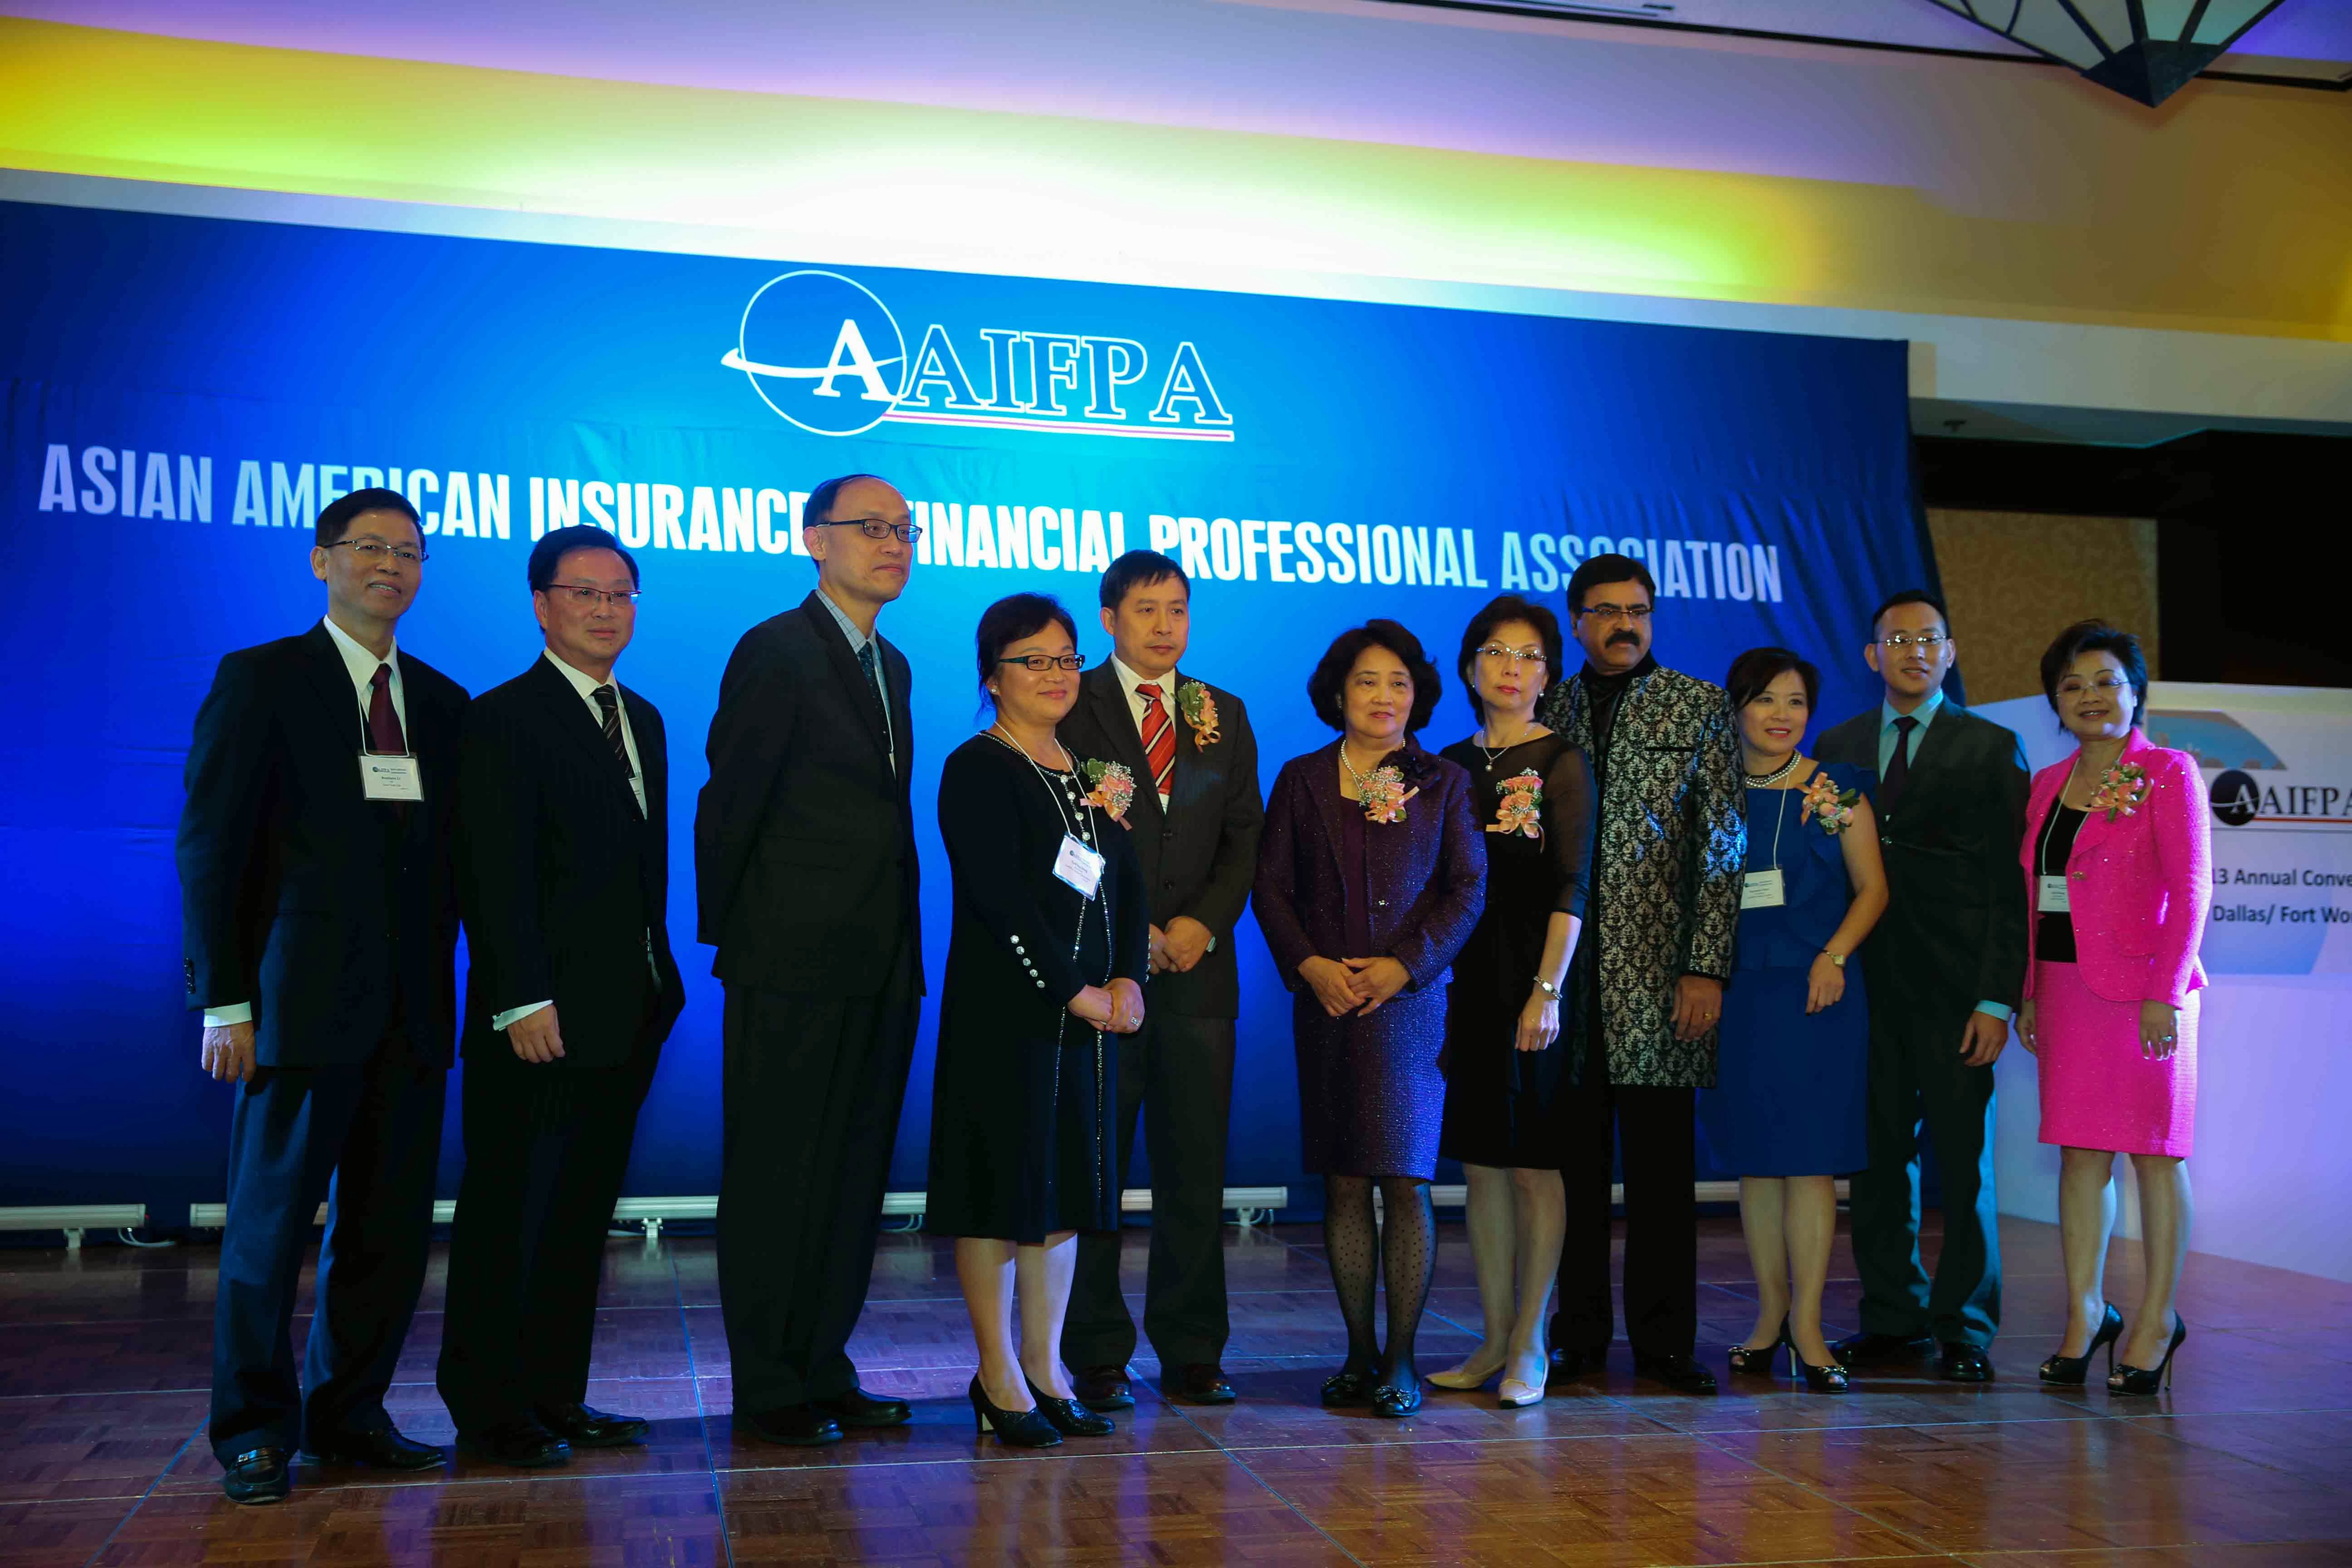 AAIFPA 2013 Annual Convention, a Monumental Triumph!